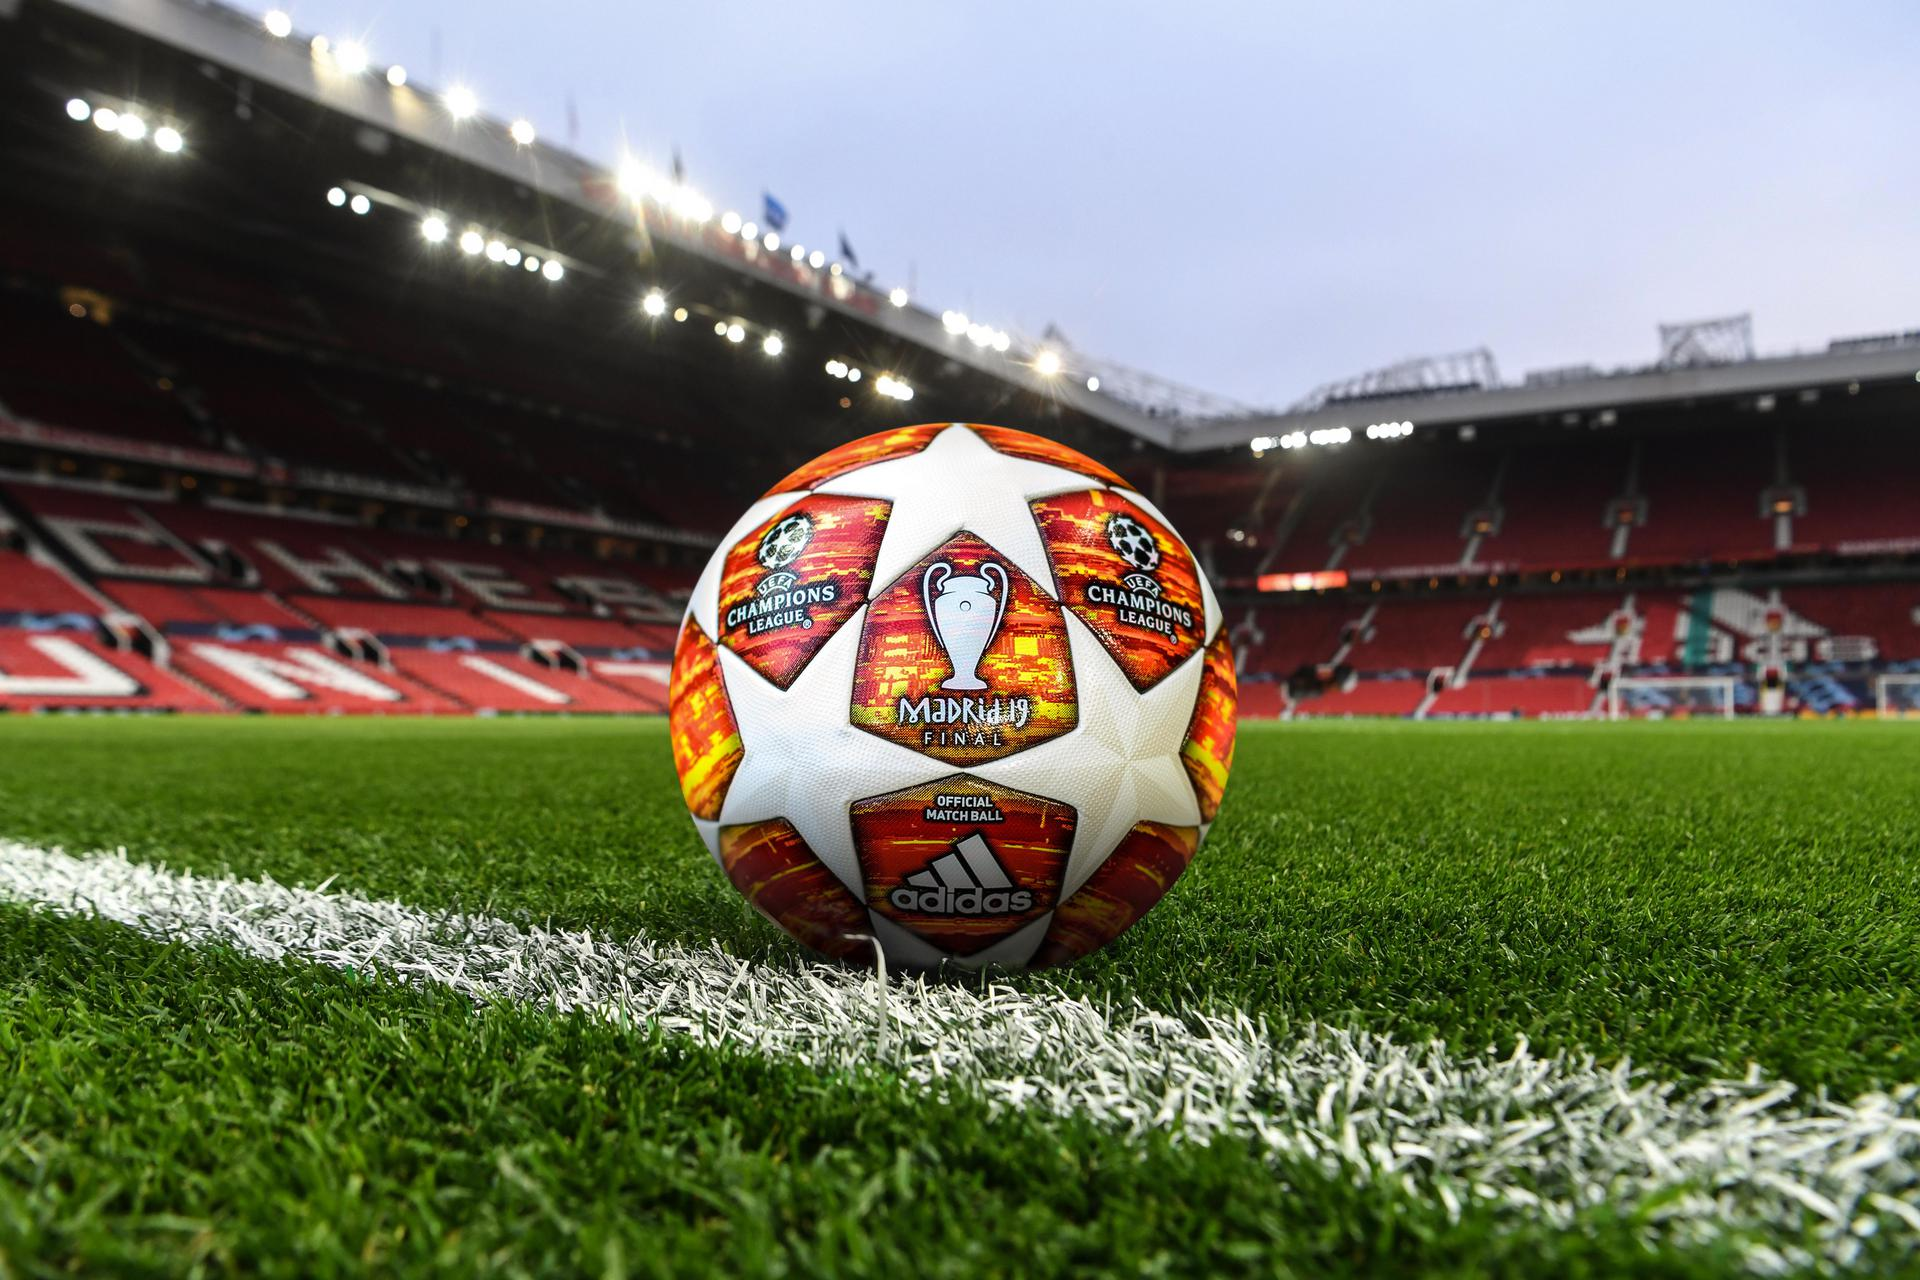 Champions League ball at Old Trafford.